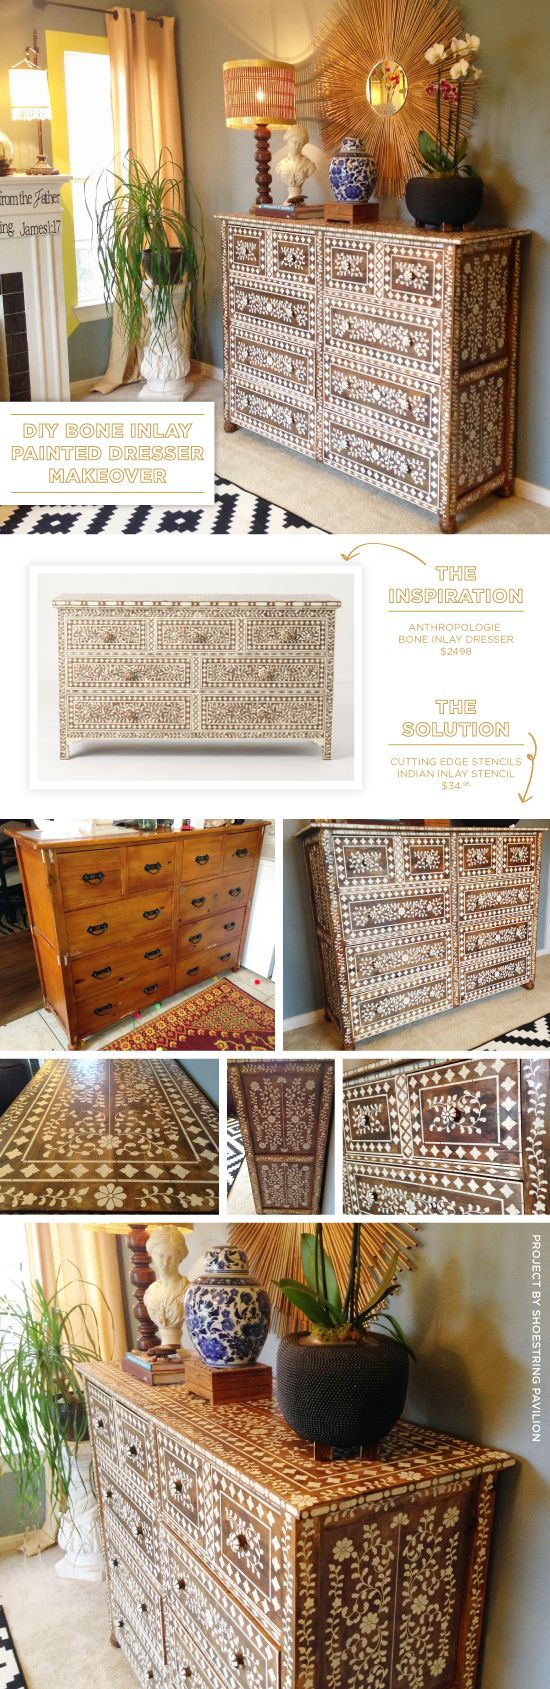 Cutting Edge Plantillas comparte un aparador estarcido bricolaje Anthropogolie incrustaciones de hueso inspirado usando el Kit de embutido india de la plantilla.  http://www.cuttingedgestencils.com/indian-inlay-stencil-furniture.html